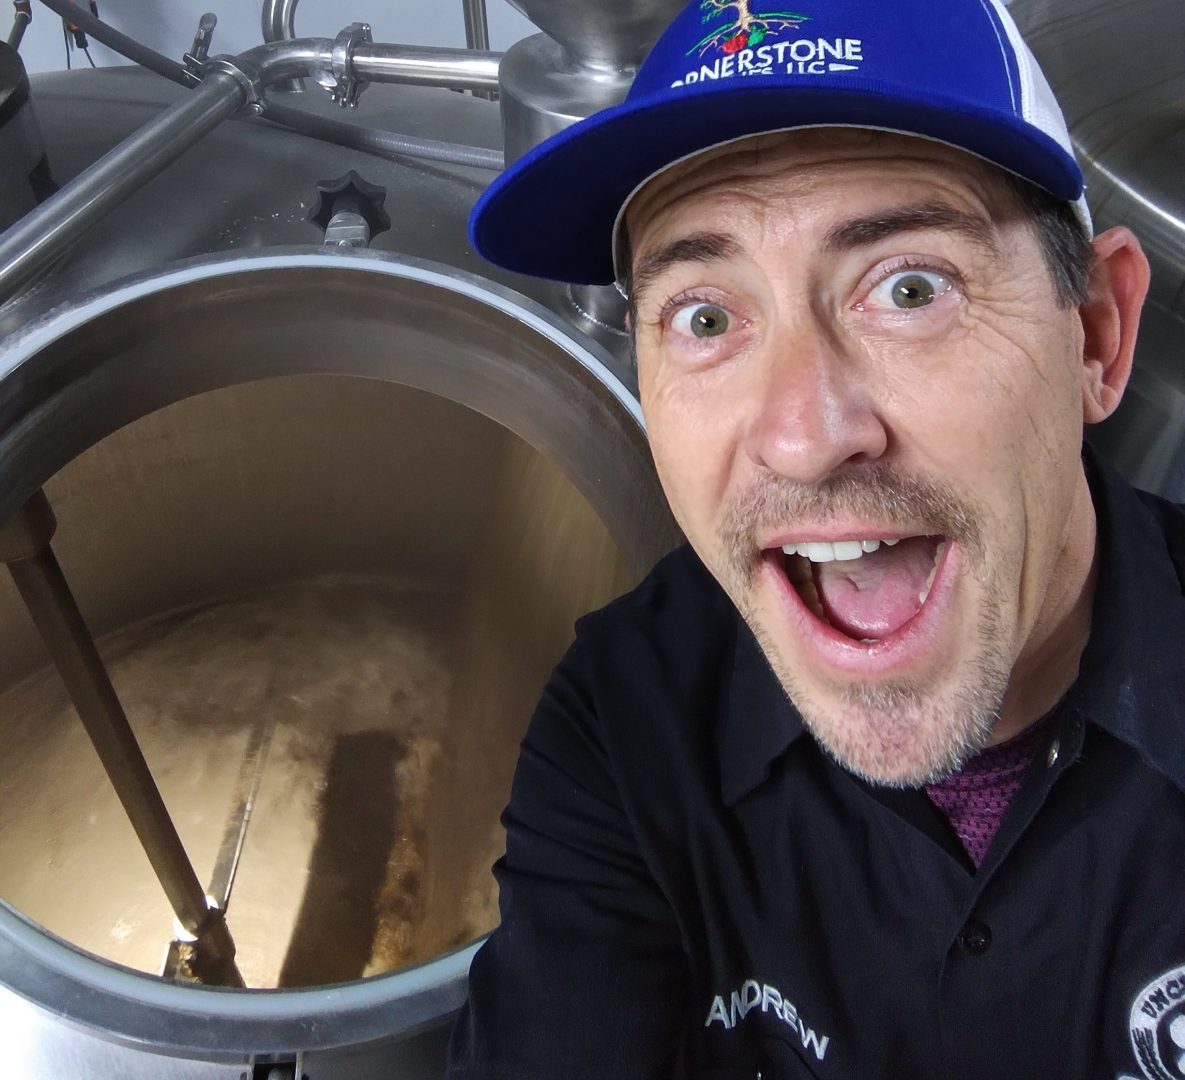 Brewery Tours and Meet the Brewer!